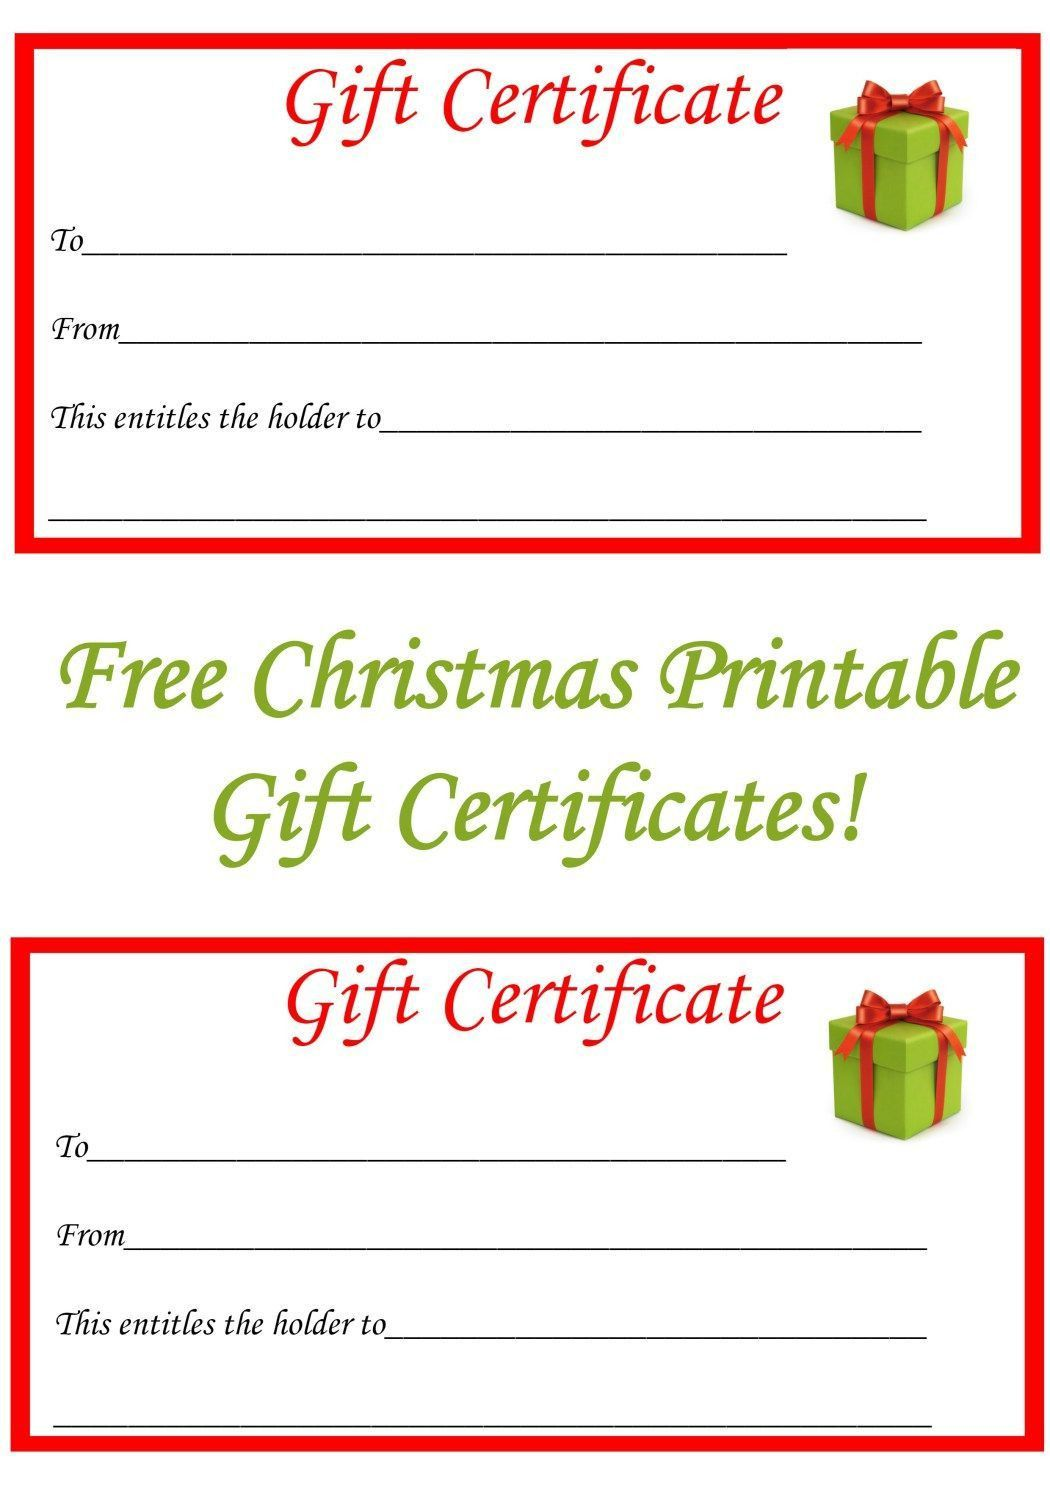 Inspirational Christmas Gift Certificate Template Free Download